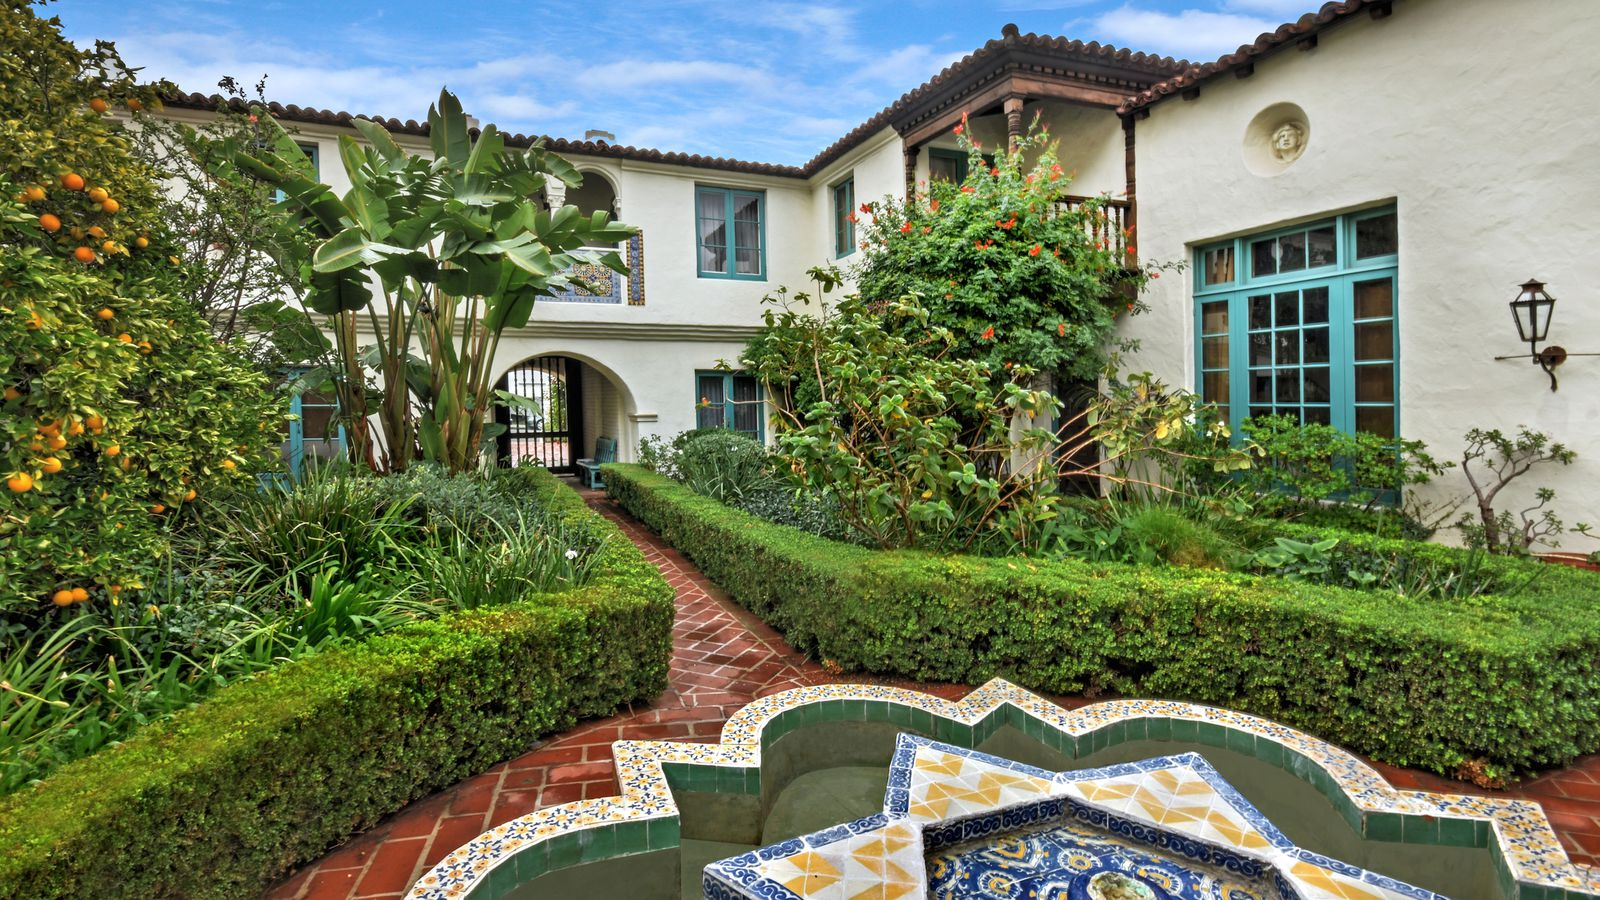 For 1 65m A Condo In Historic Spanish Revival Courtyard